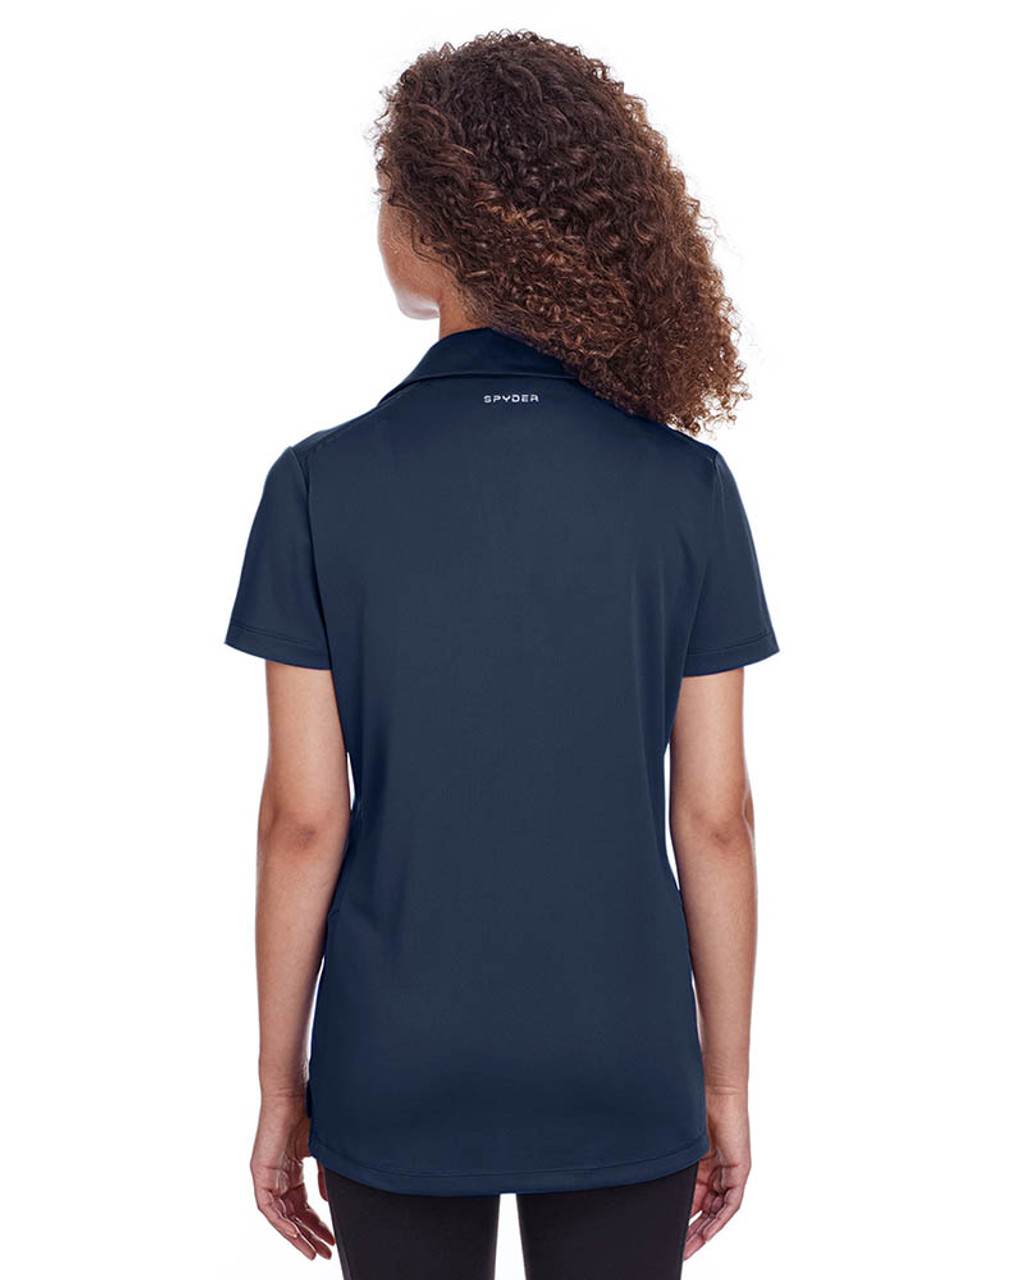 Frontier - Back, S16519 Spyder Ladies' Freestyle Polo | BlankClothing.ca